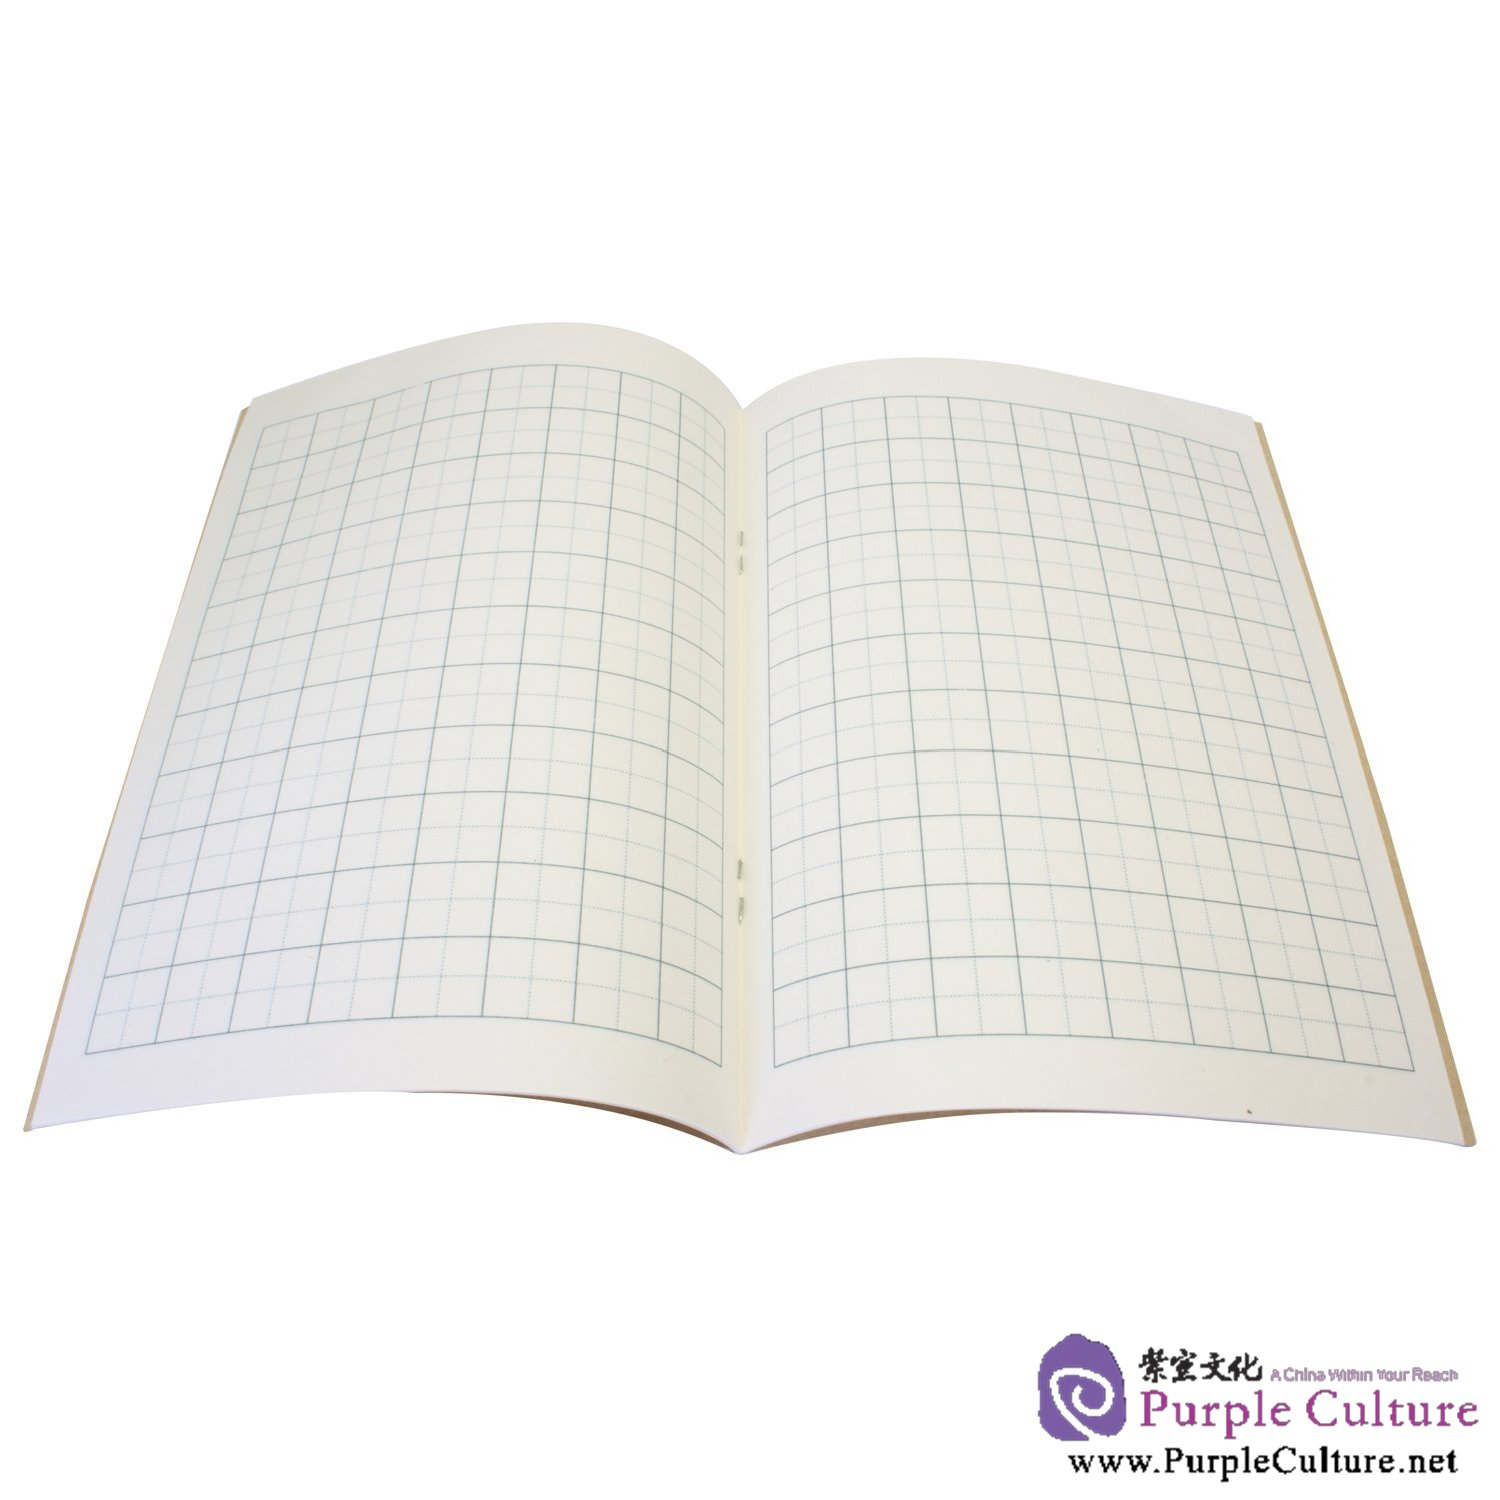 Chinese Handwriting Practice Paper With Hanzi Grids 10